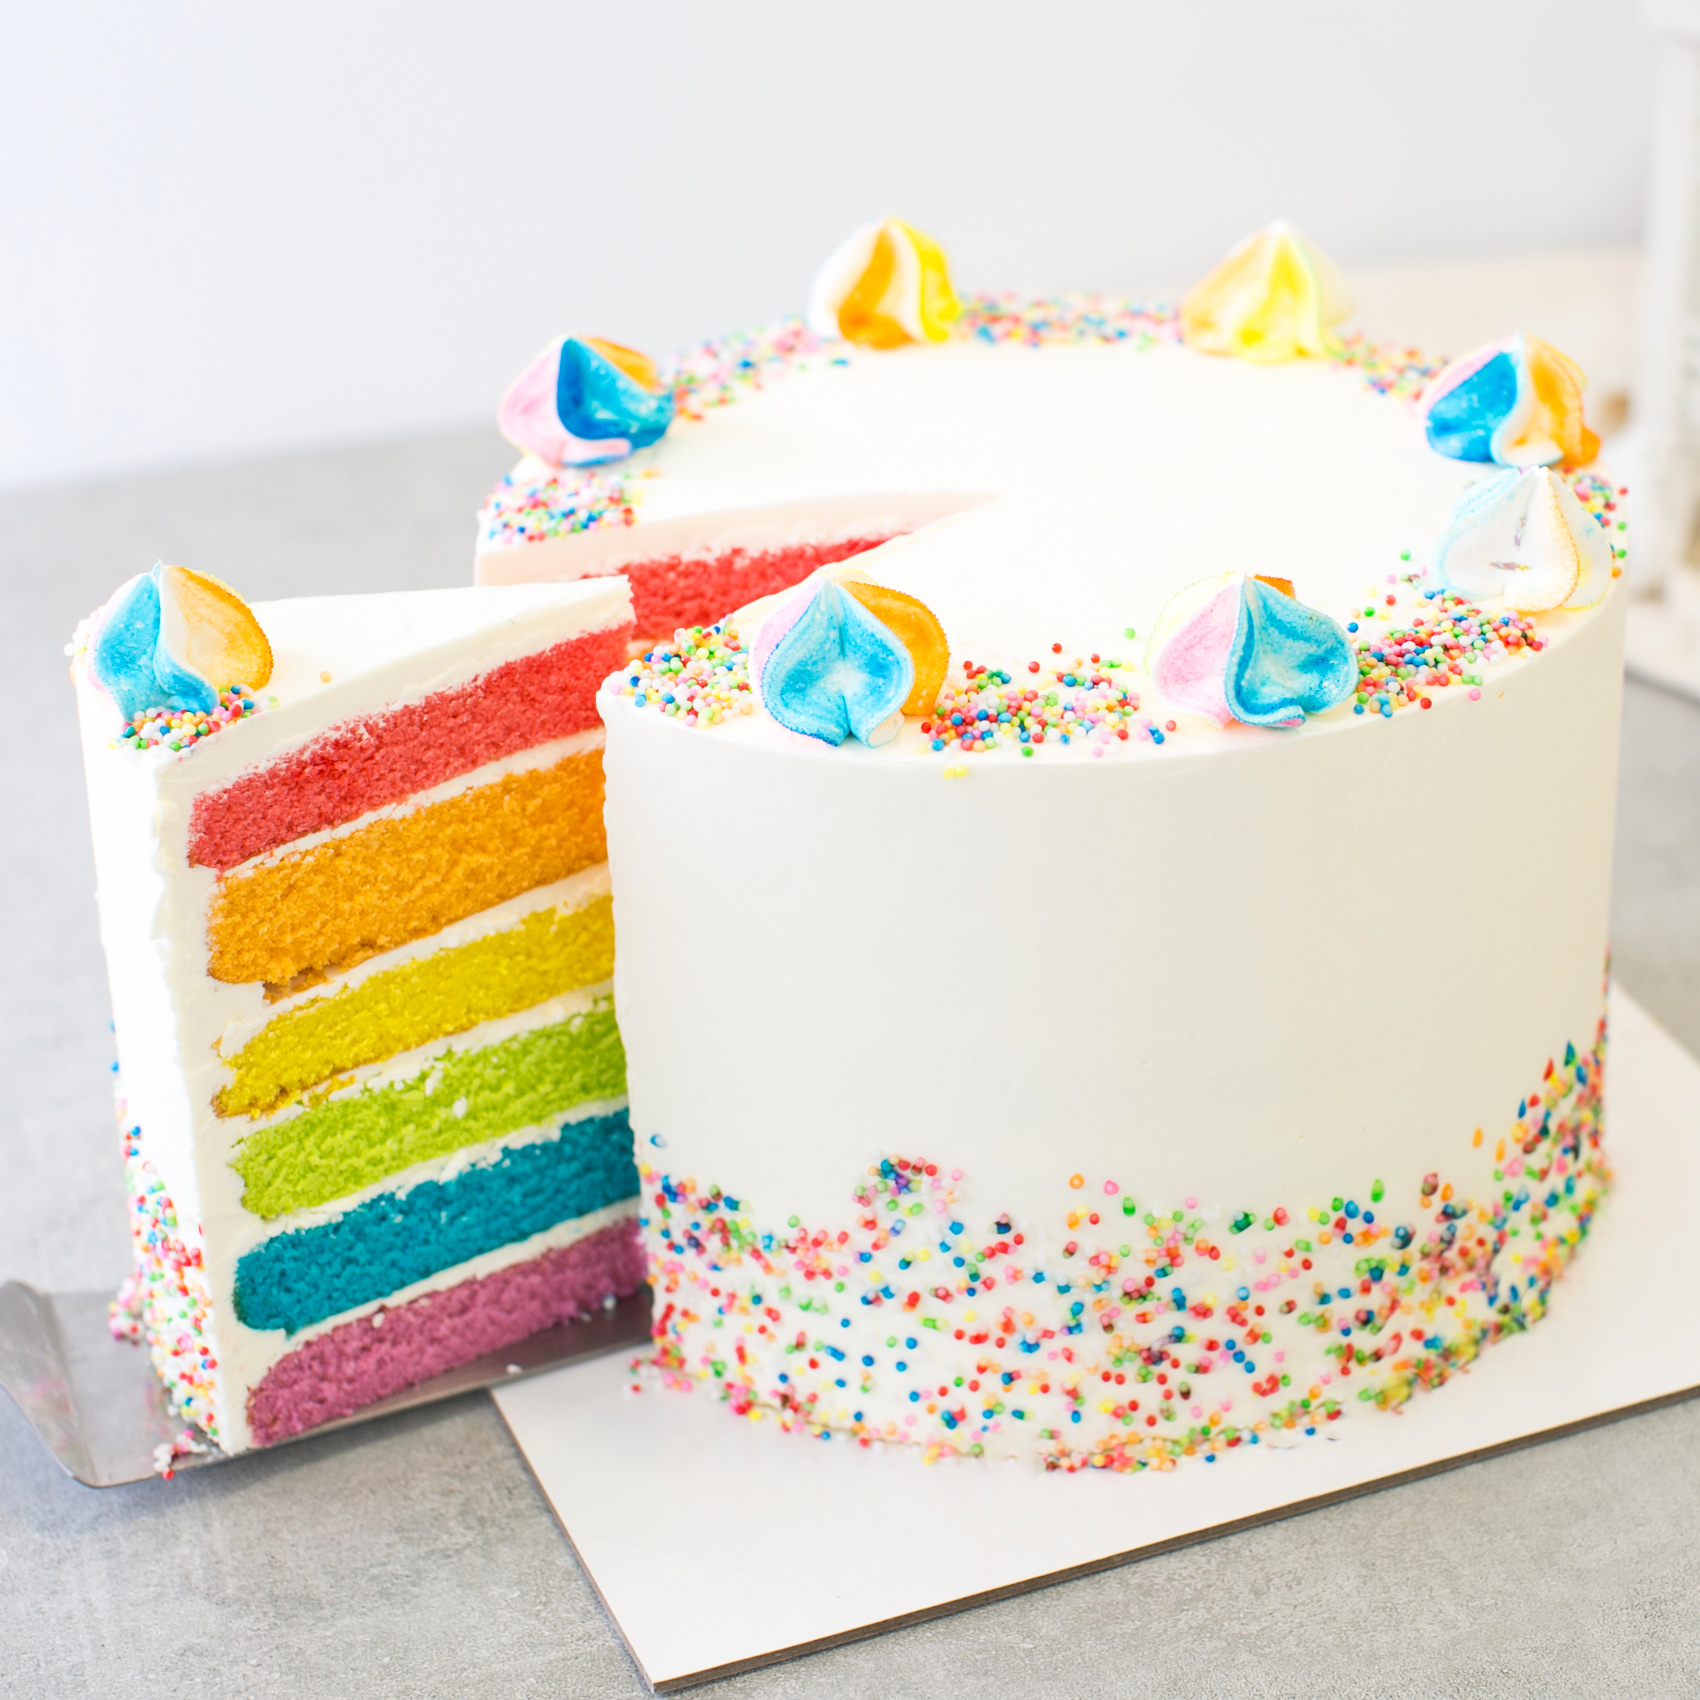 Baby Cake Recipes From Scratch